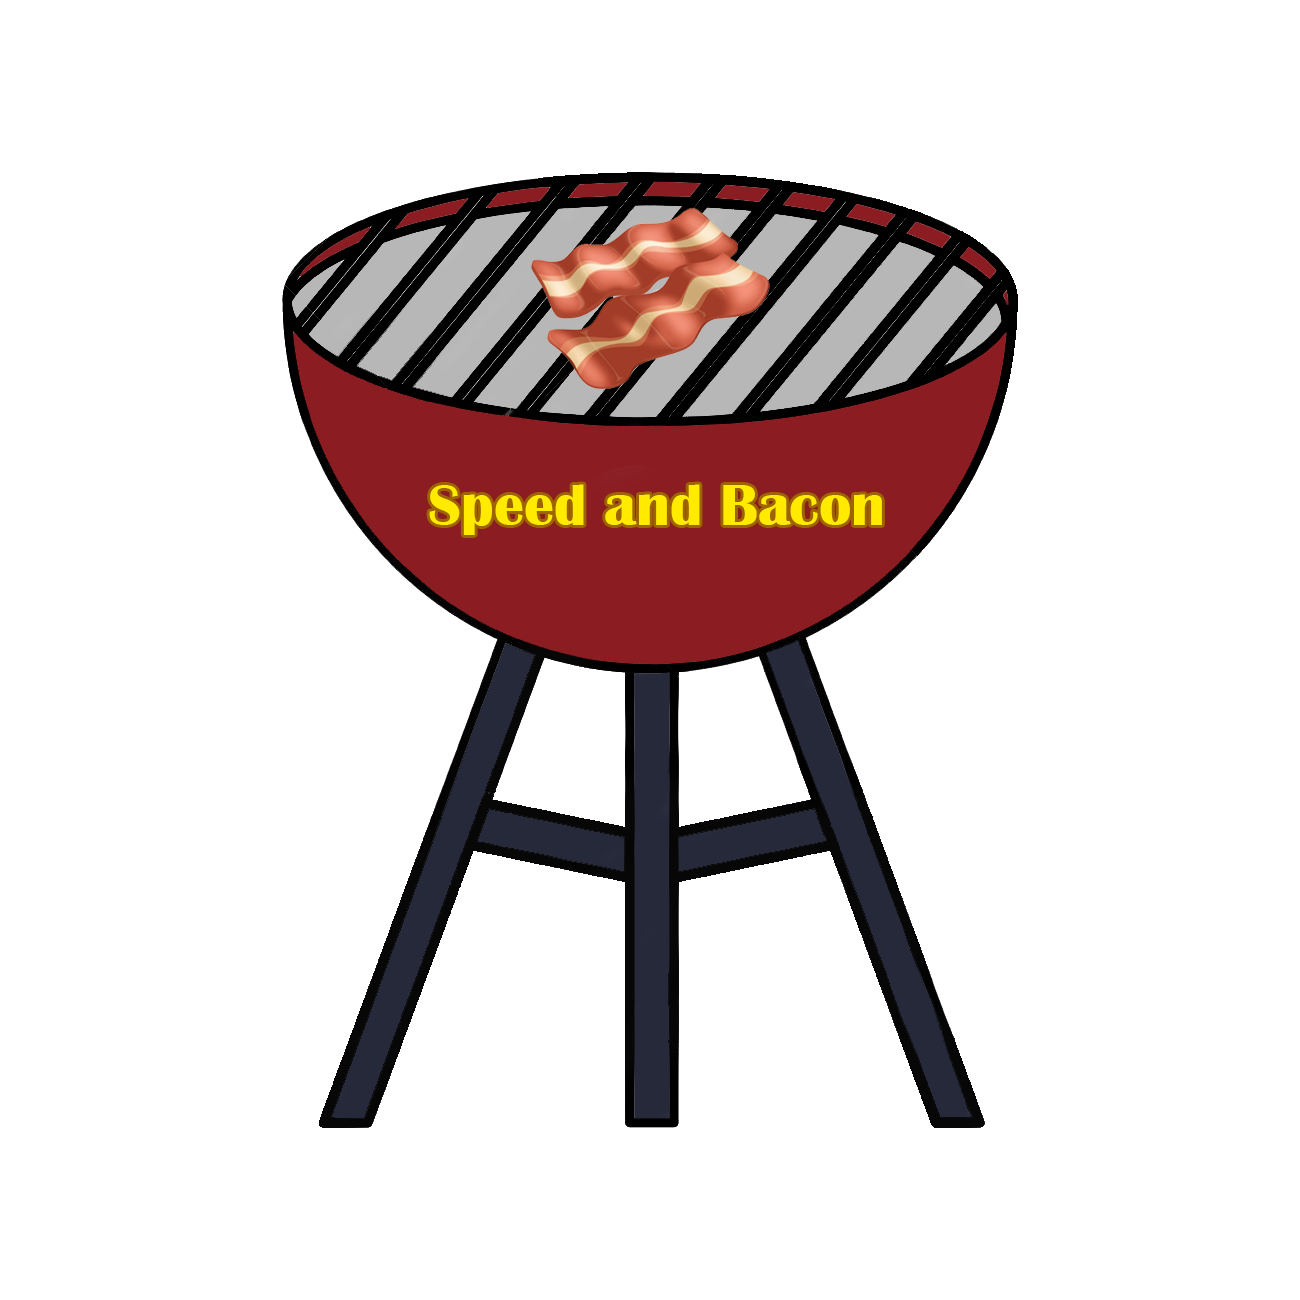 Speed and Bacon